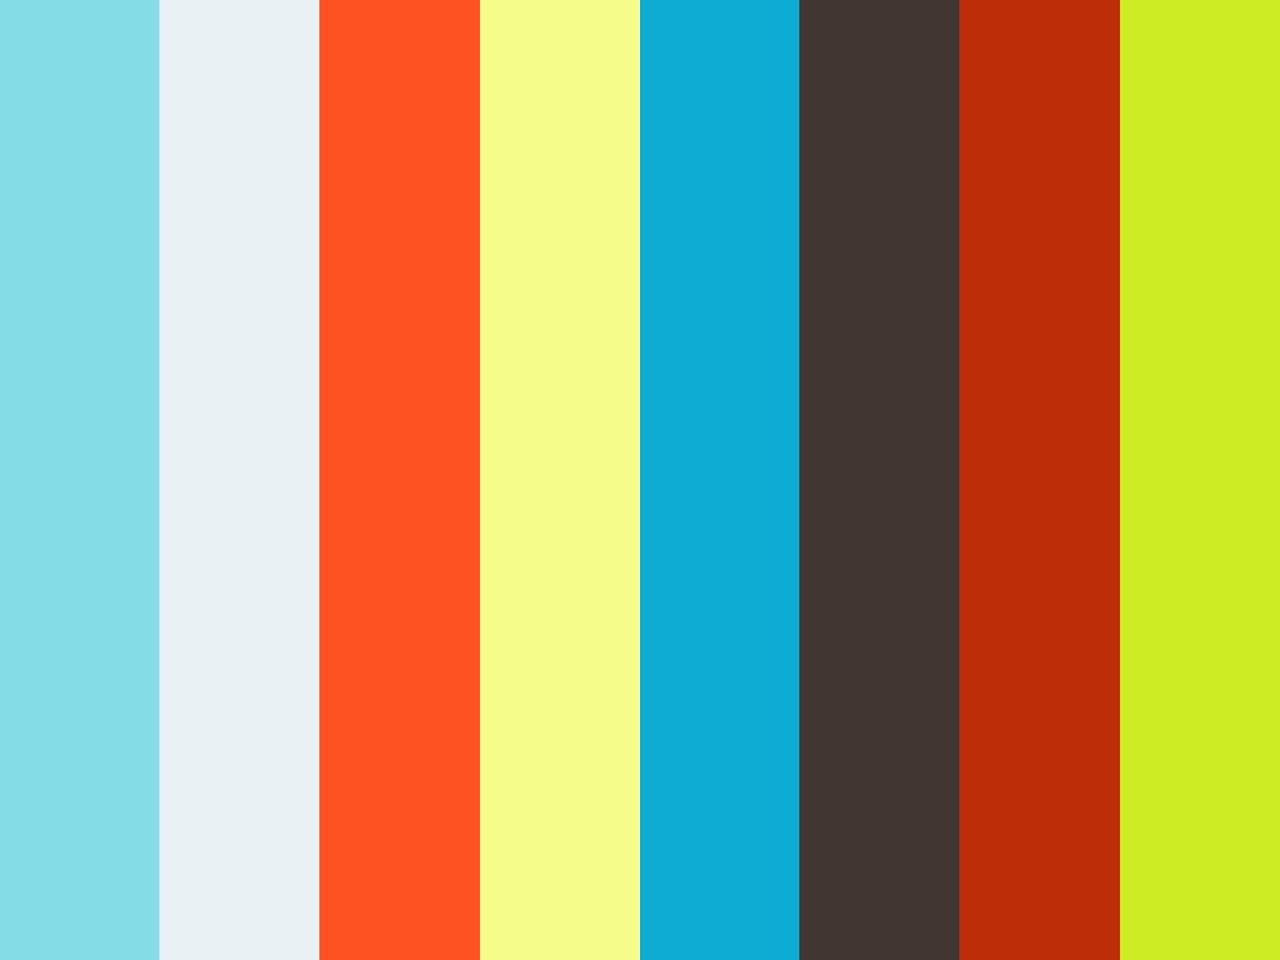 Philipp Conzett and Leif Longva: UiT Open Research Data